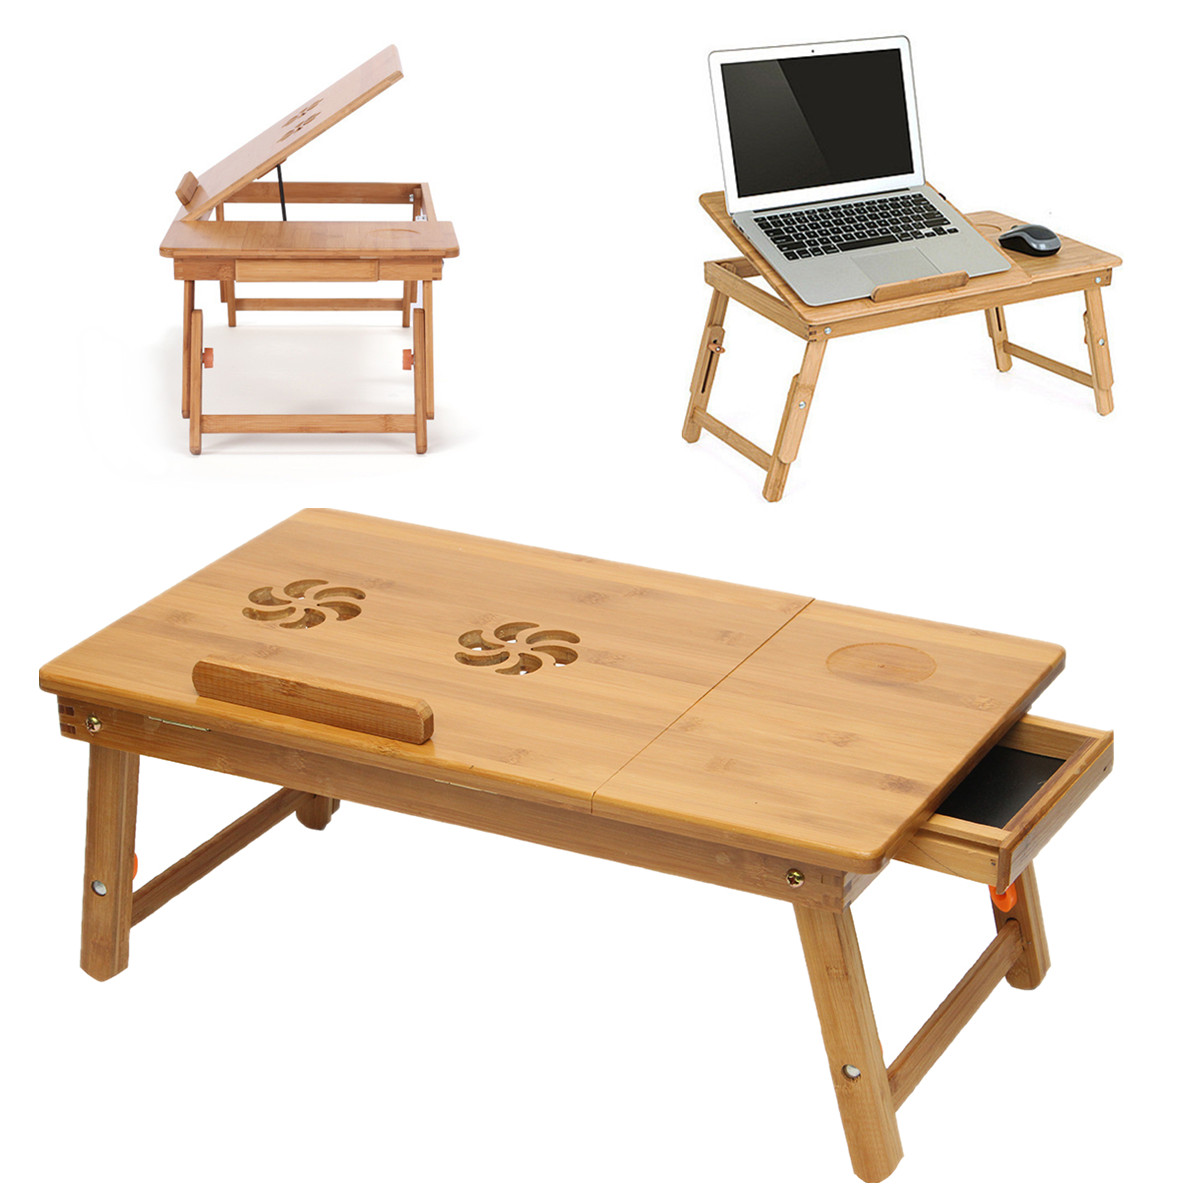 Laptop bed table tray - Laptop Tray Folding Bamboo Table Lap Without Cooler Pad Sofa Bed Office Stand Table Computer Desk